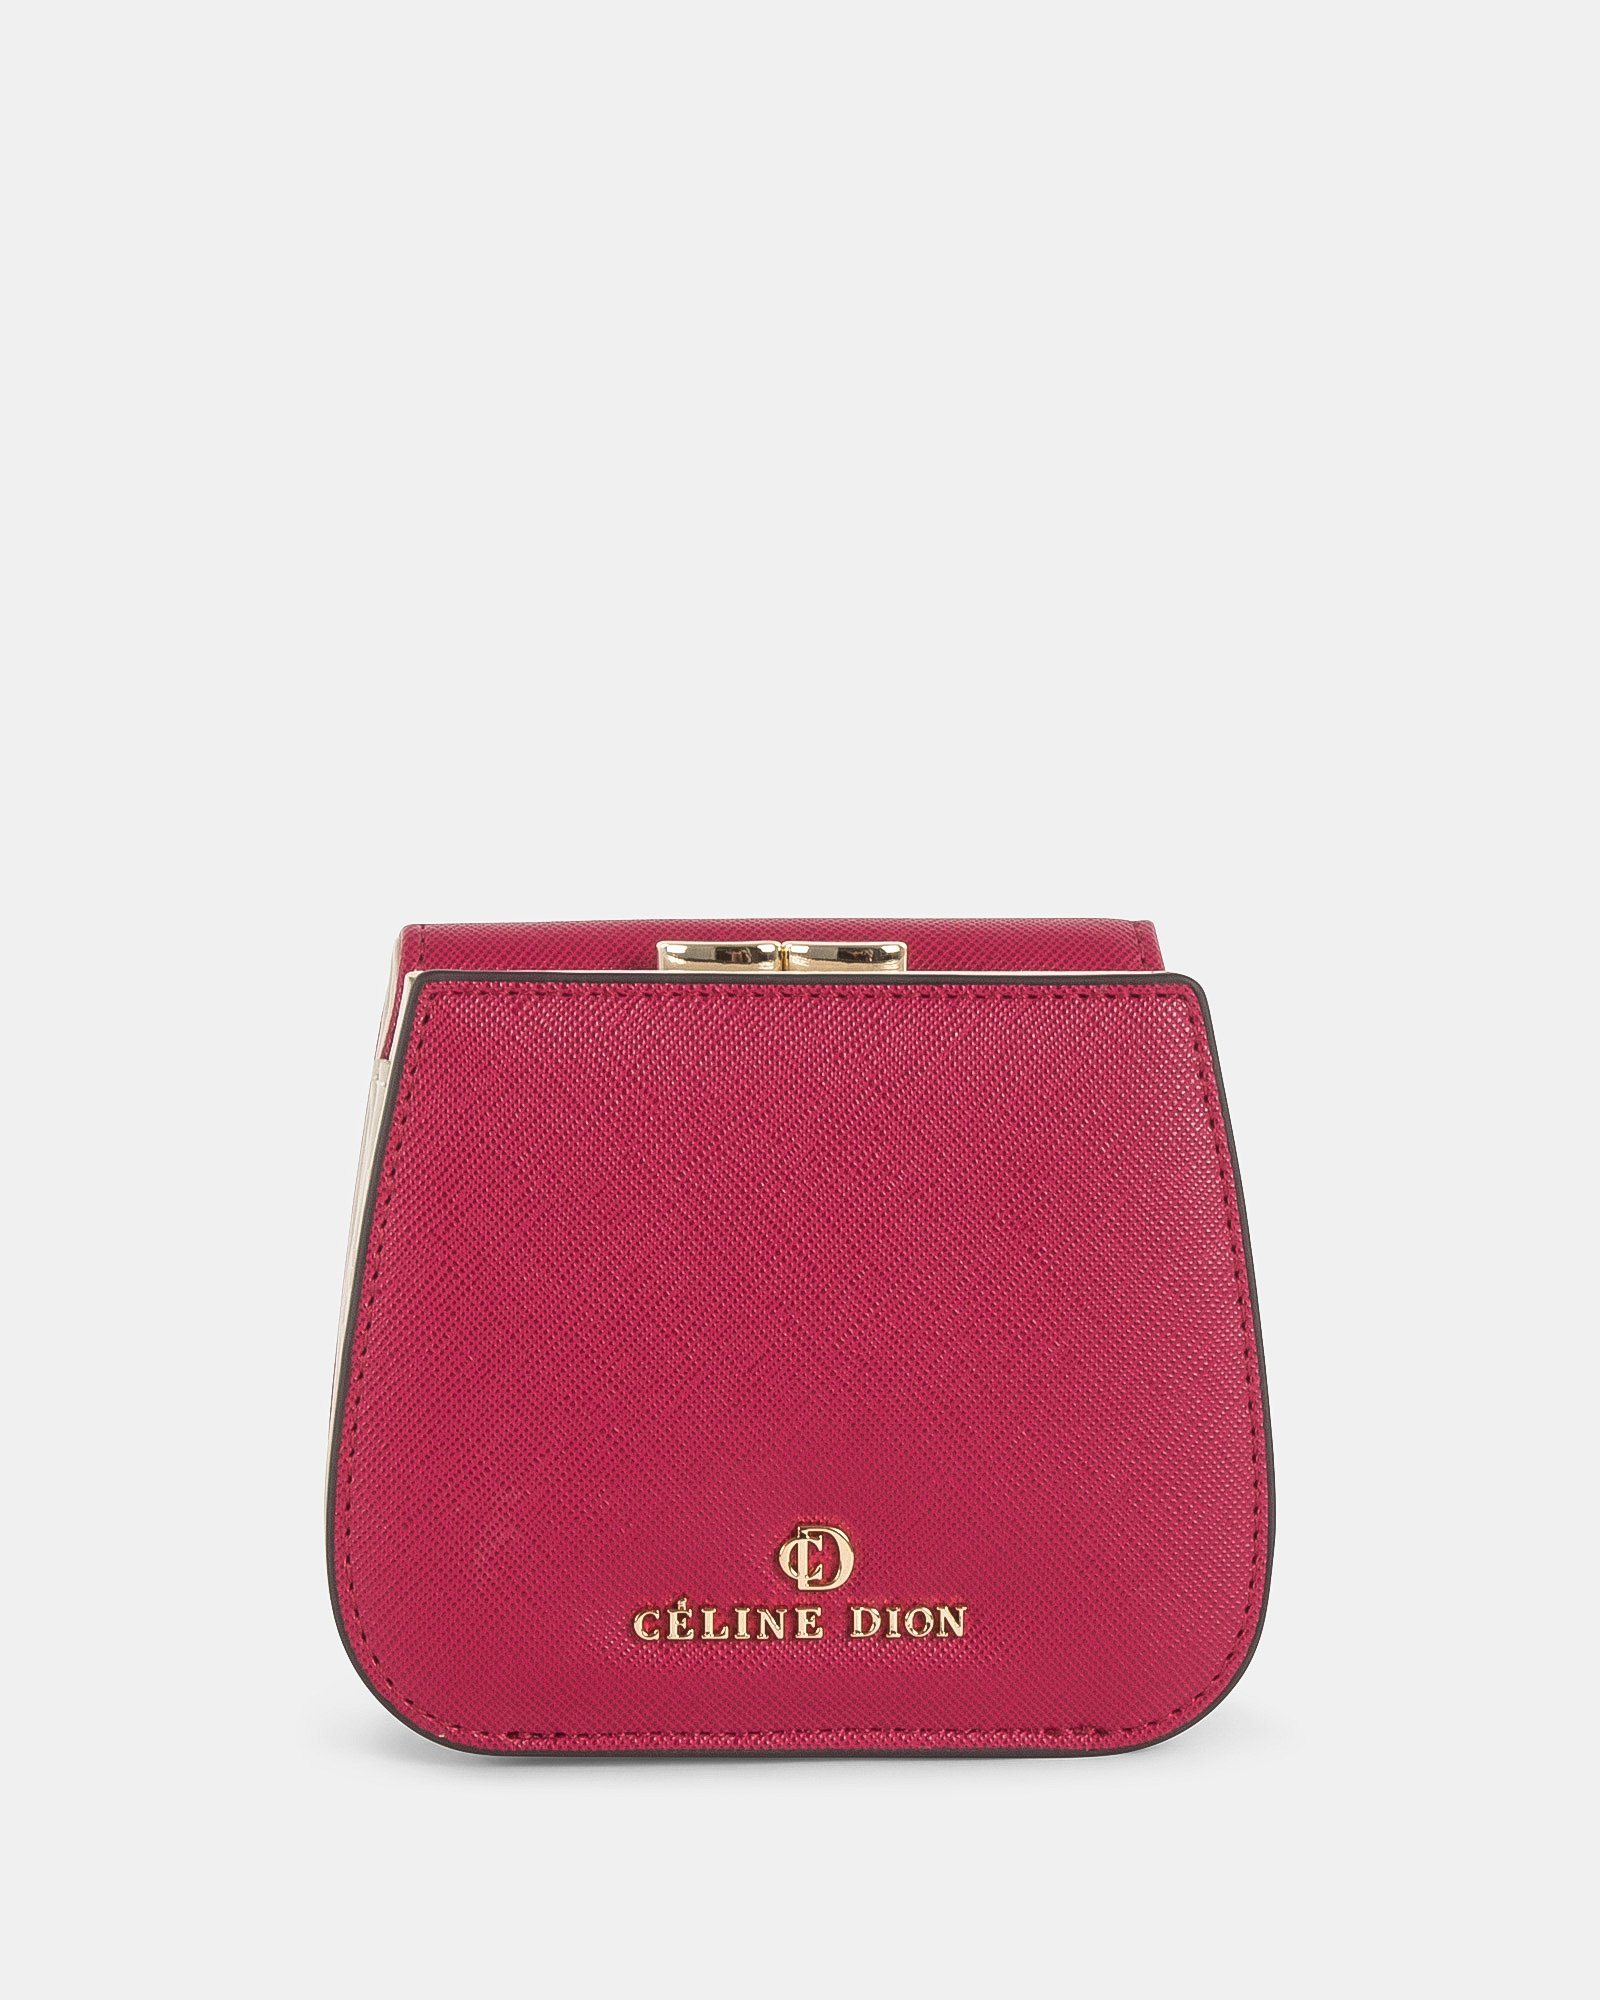 GRAZIOSO - Small rounded wallet with integrated coin clasp - Magenta - Céline Dion - Zoom